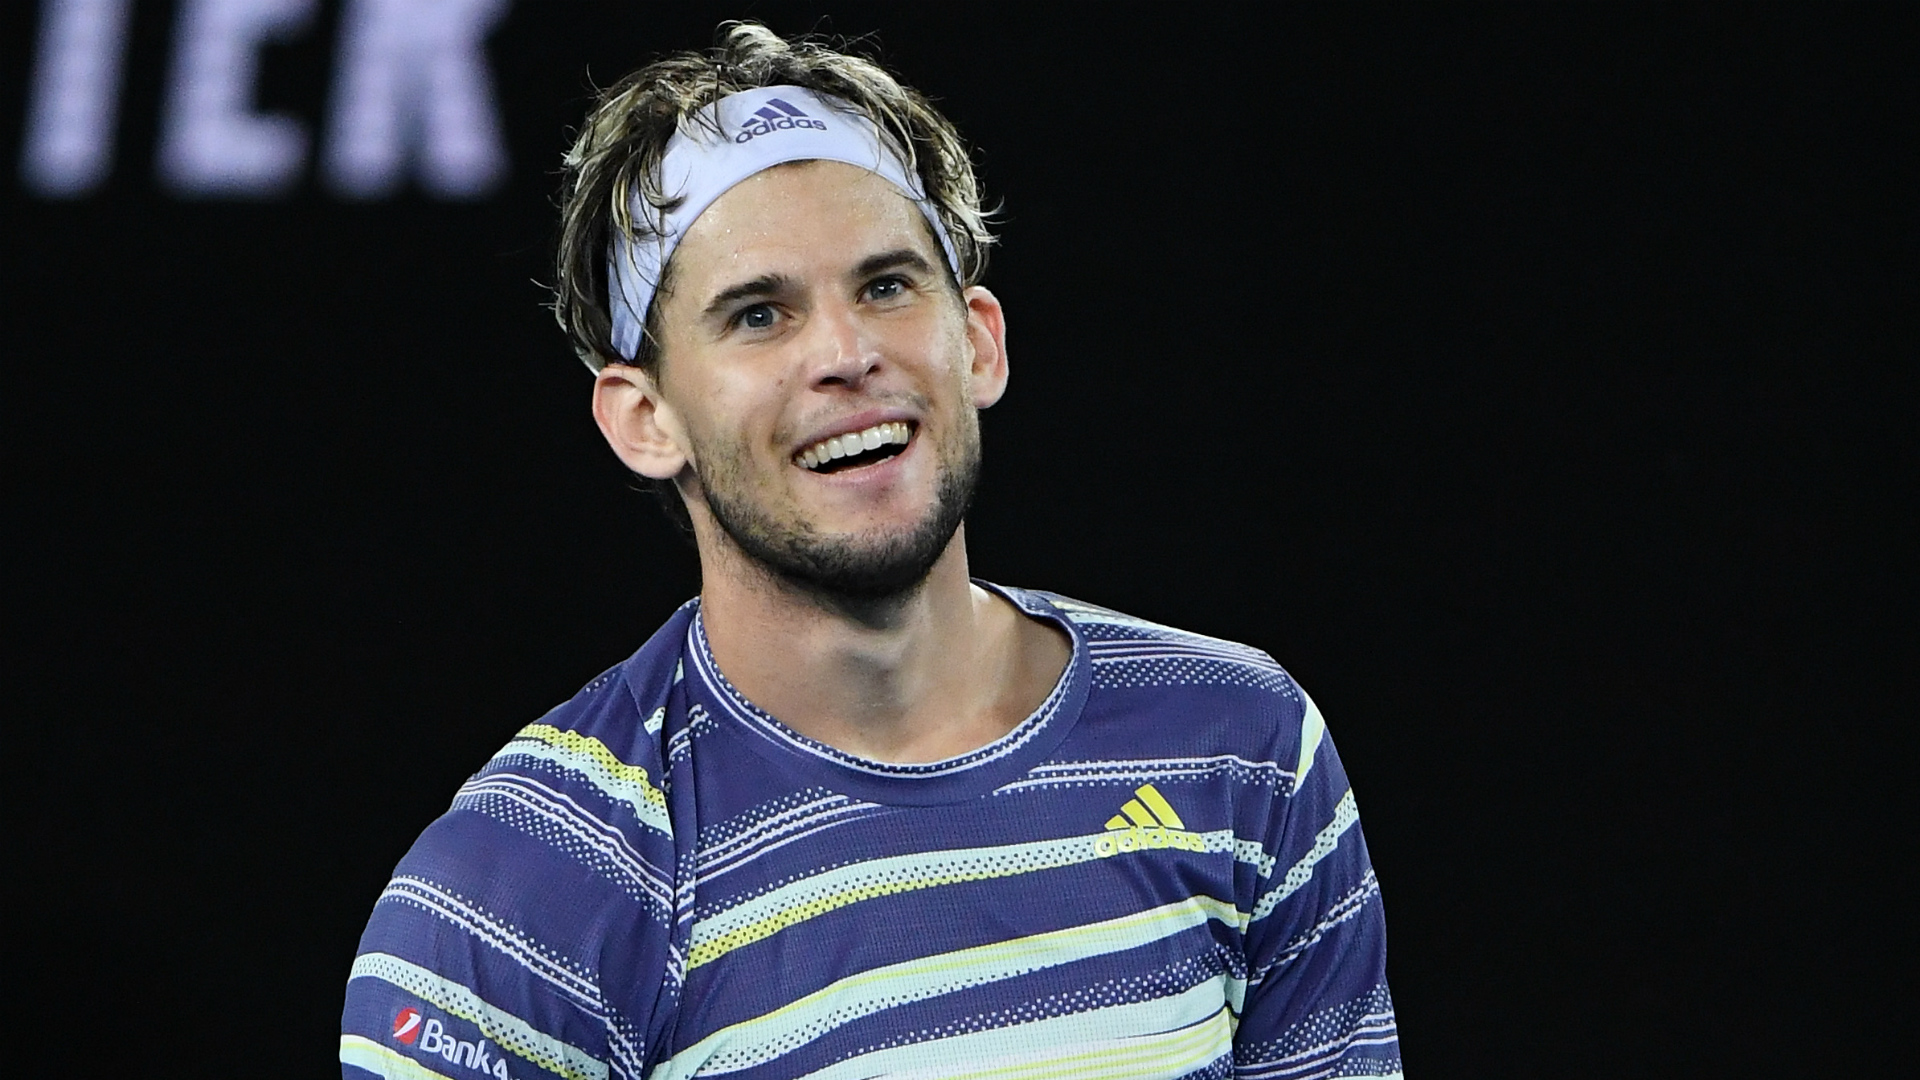 Playing on clay 'like coming home' for Thiem after Australian Open run